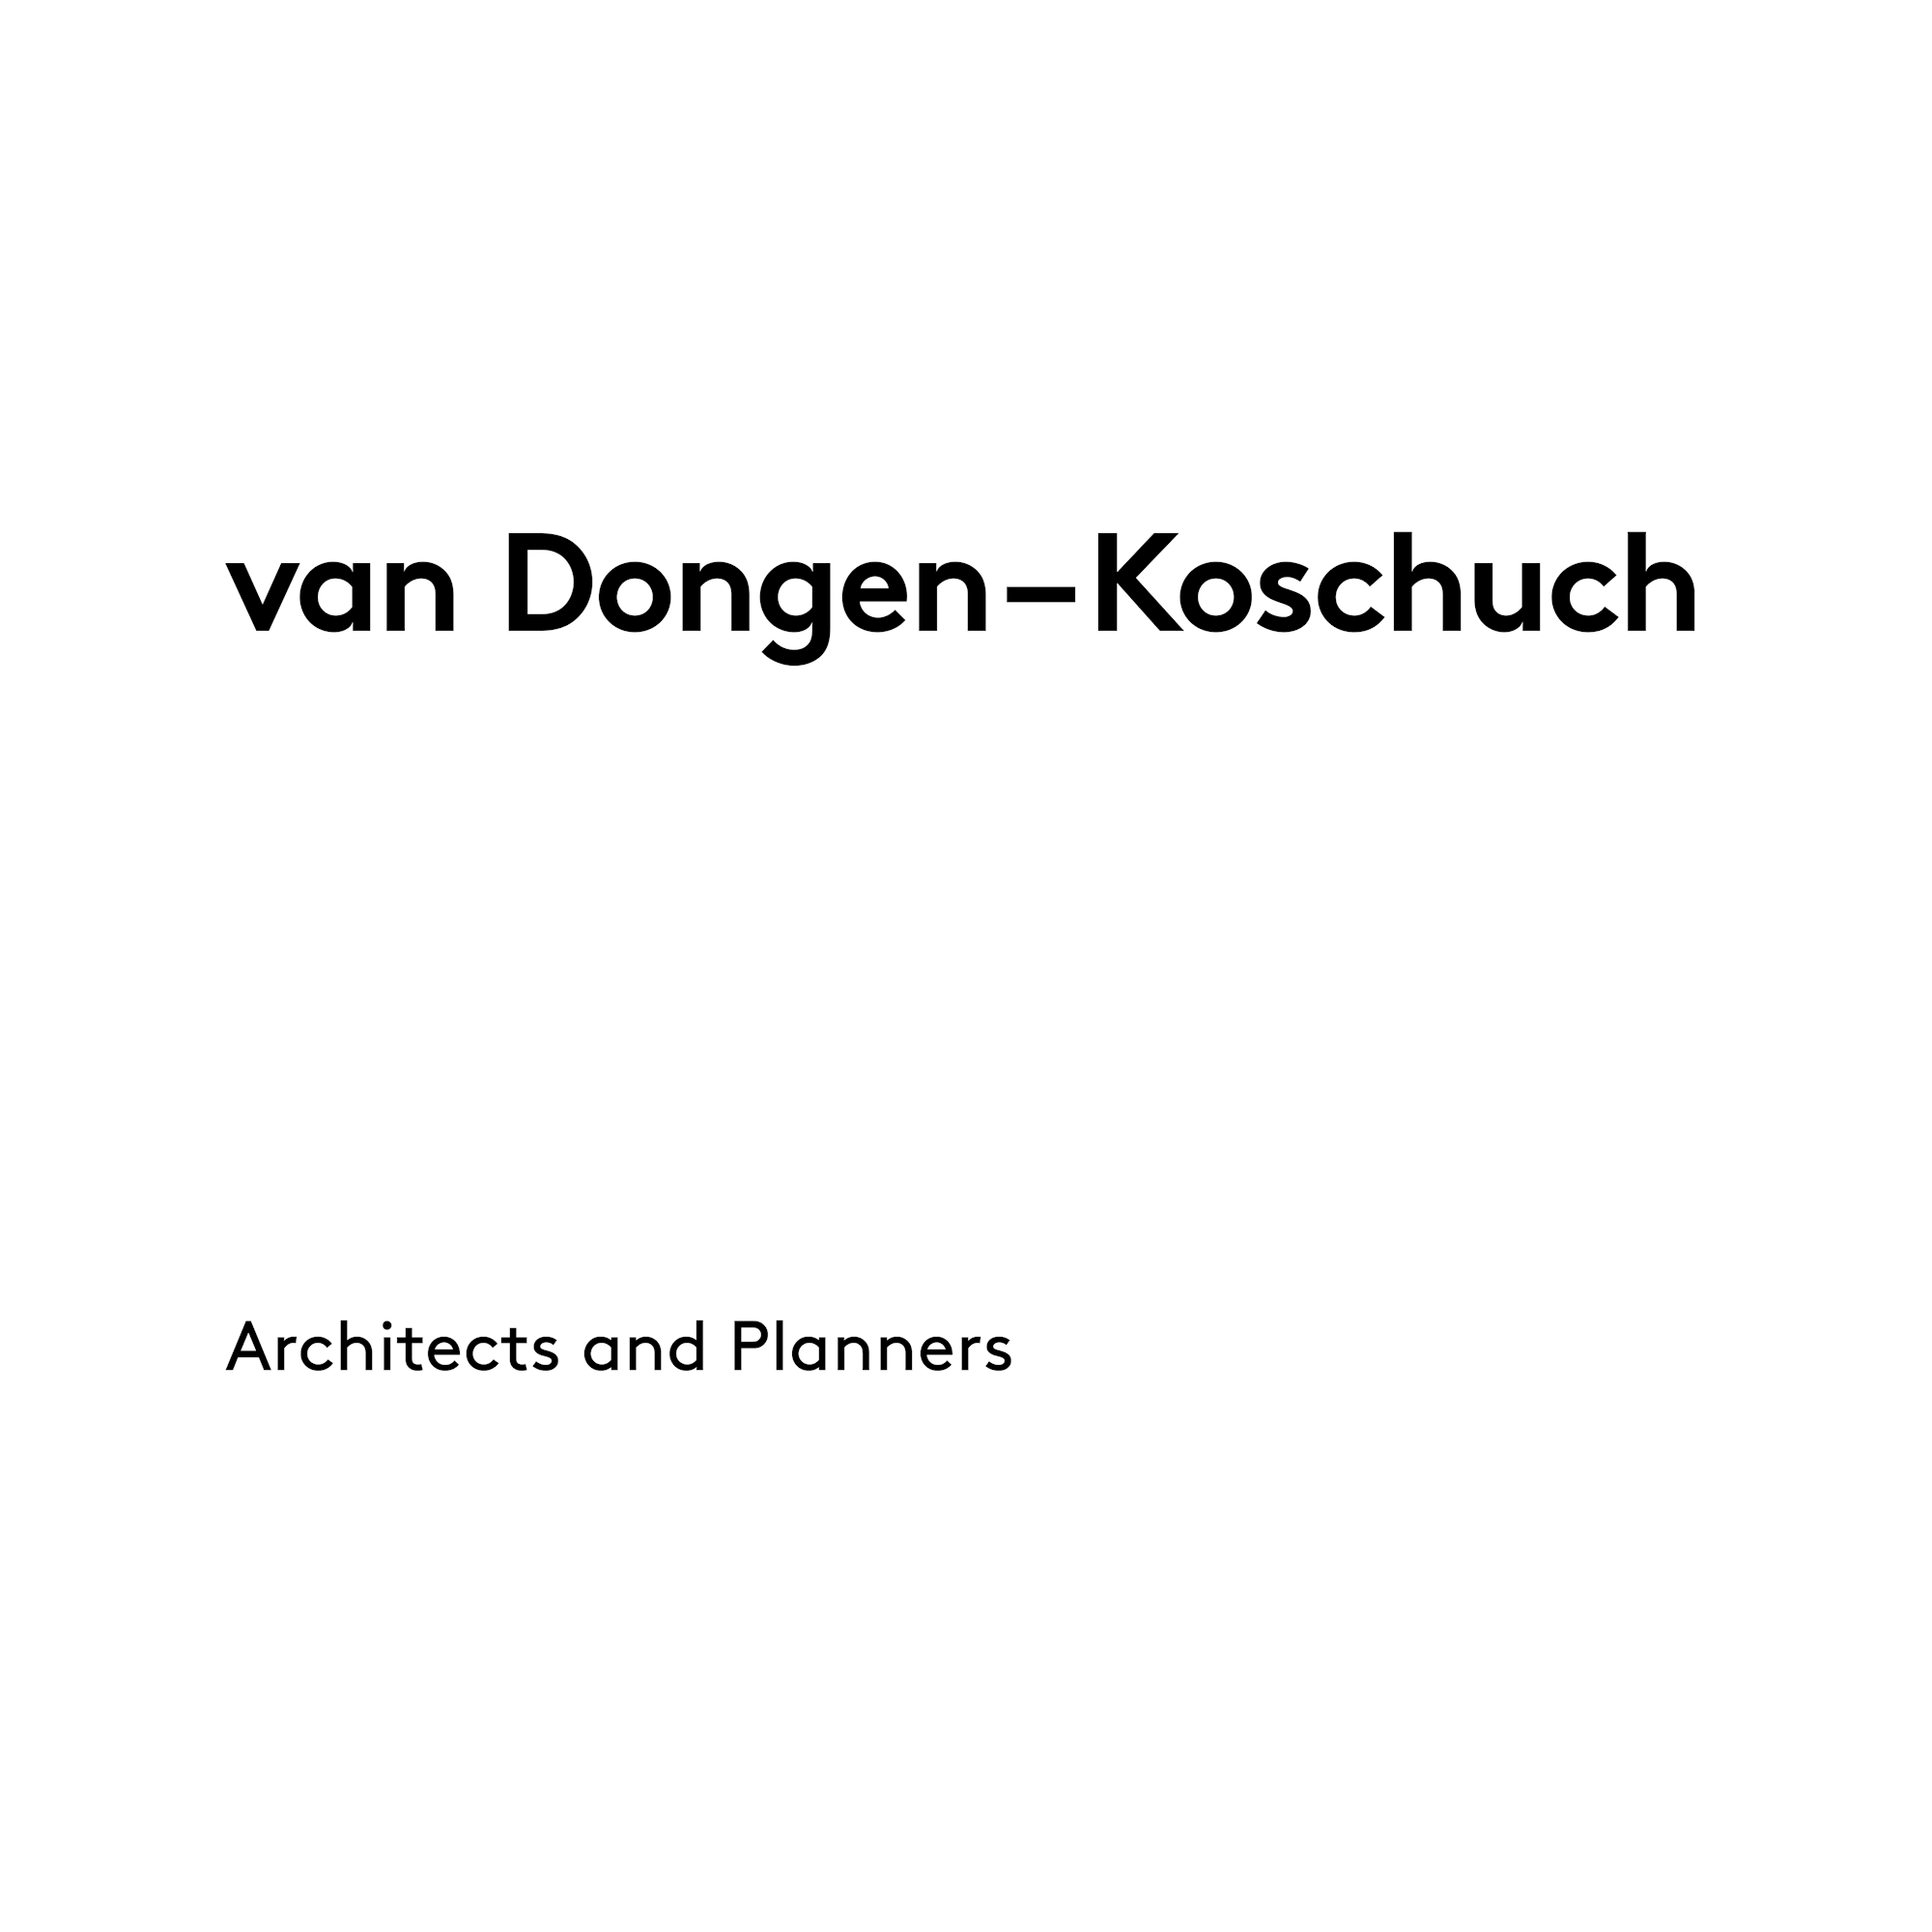 Logo Van Dongen-Koschuch Architects and Planners